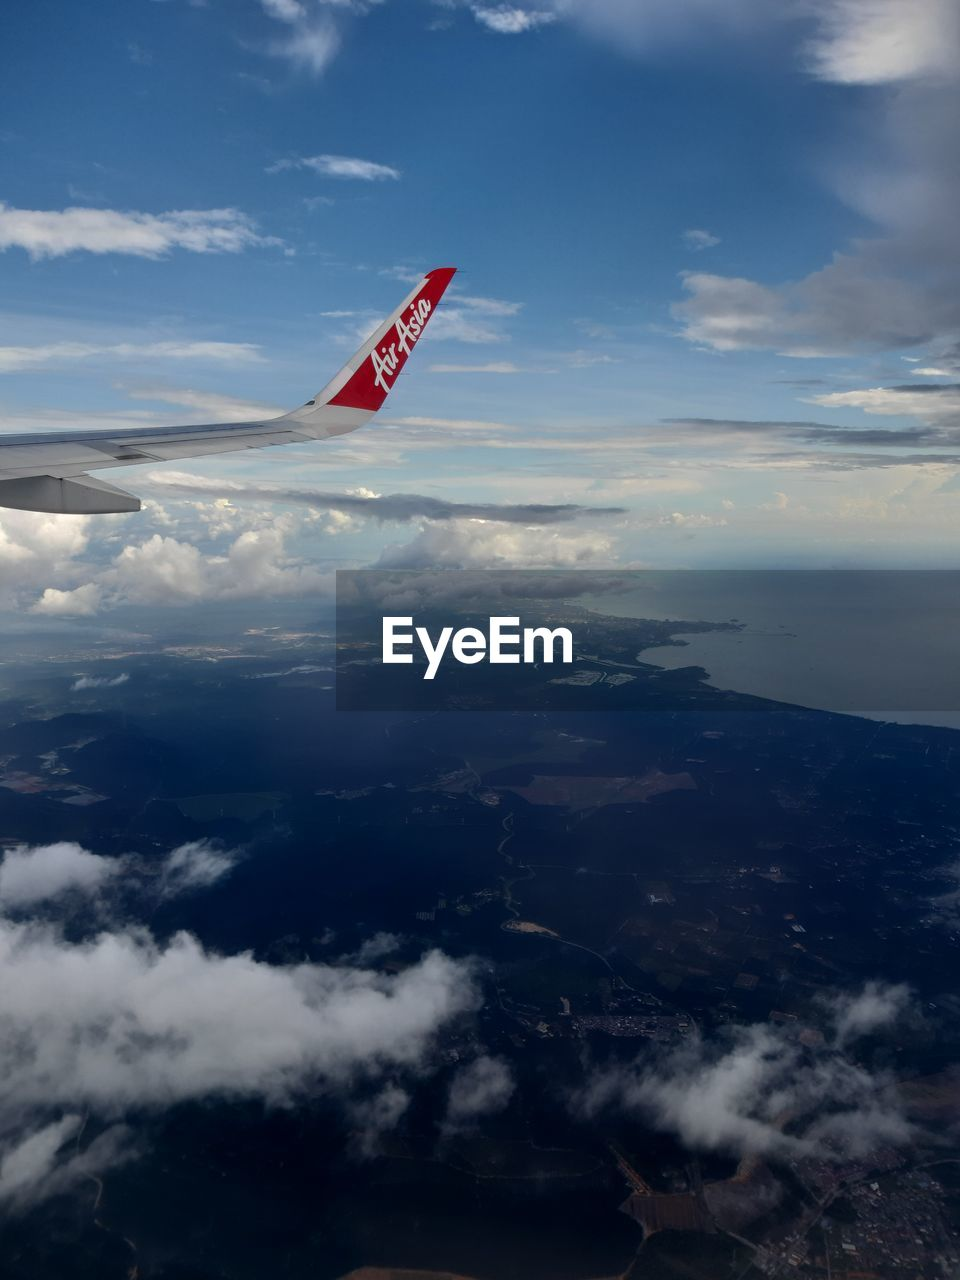 cloud - sky, sky, air vehicle, nature, flying, airplane, no people, day, red, aerial view, outdoors, mid-air, motion, scenics - nature, mode of transportation, mountain, transportation, beauty in nature, aircraft wing, environment